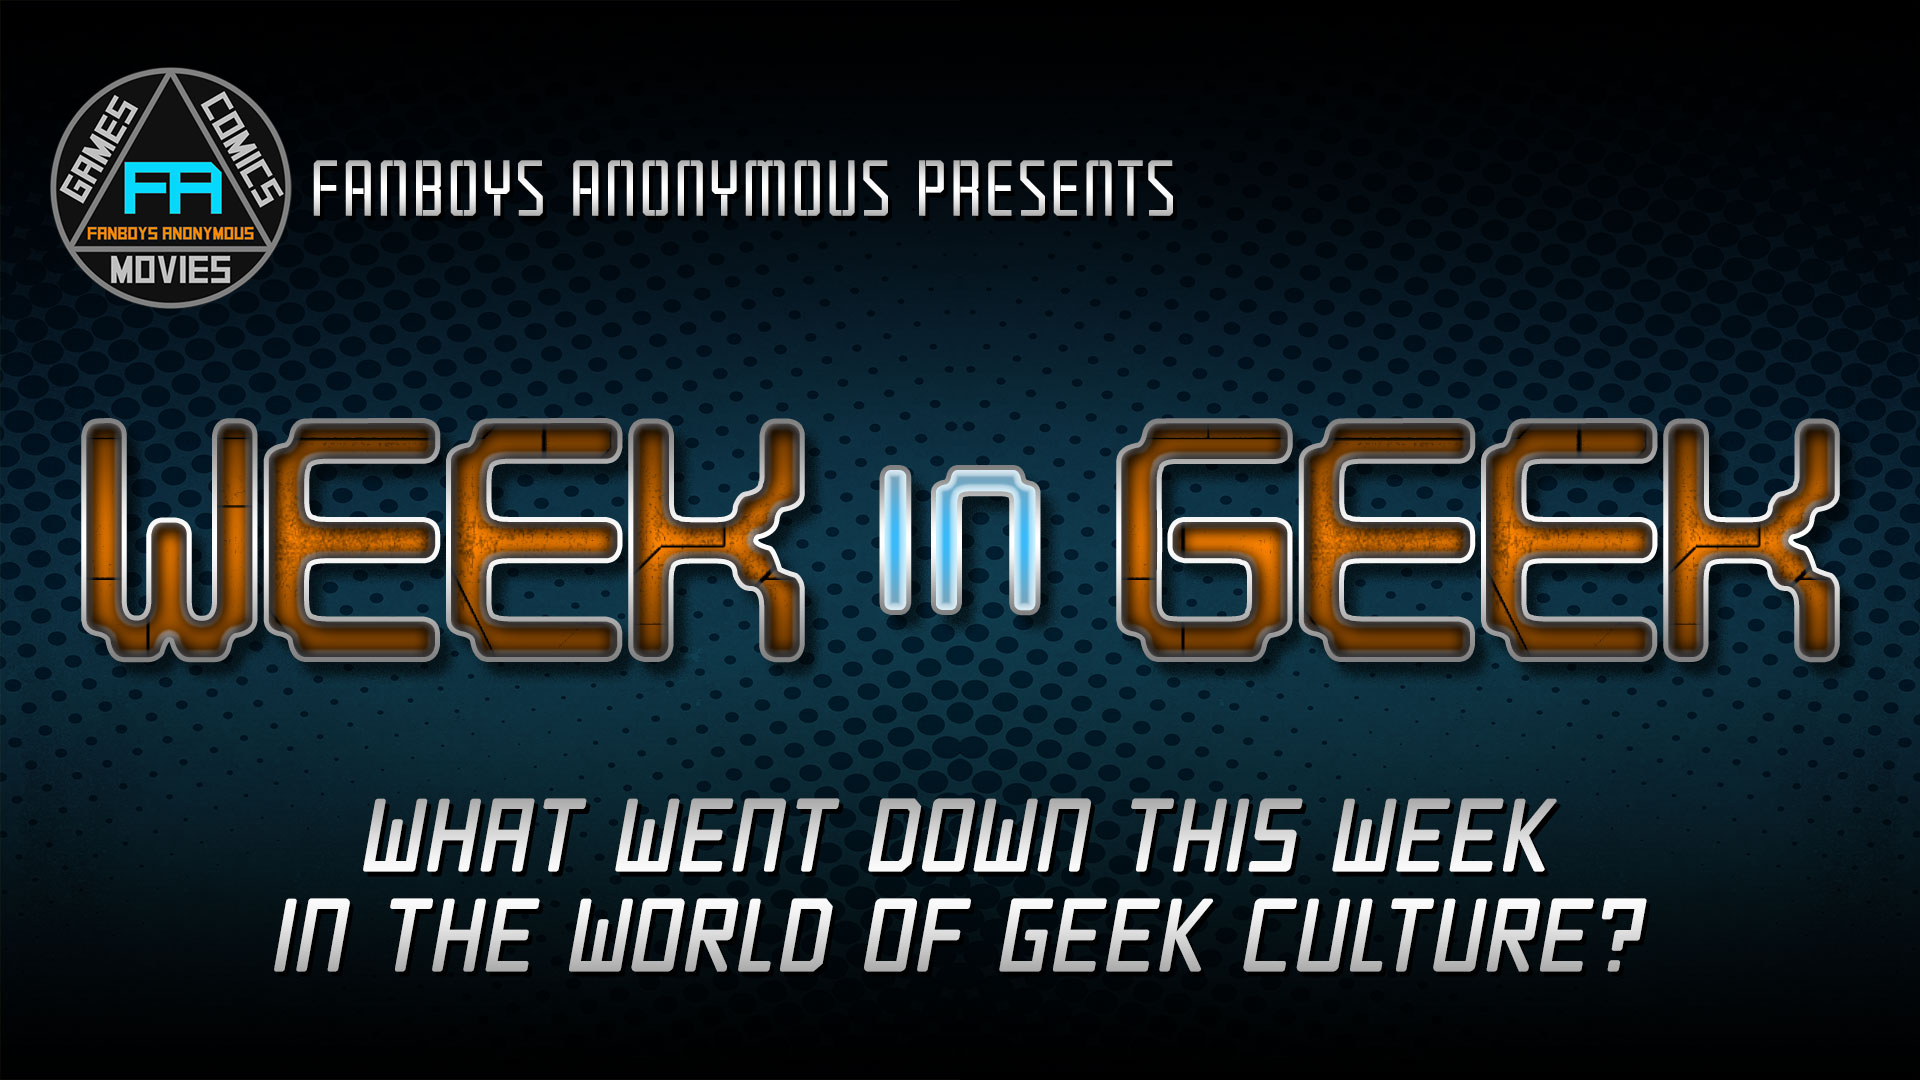 This week in geek culture Fanboys Anonymous nerd recap